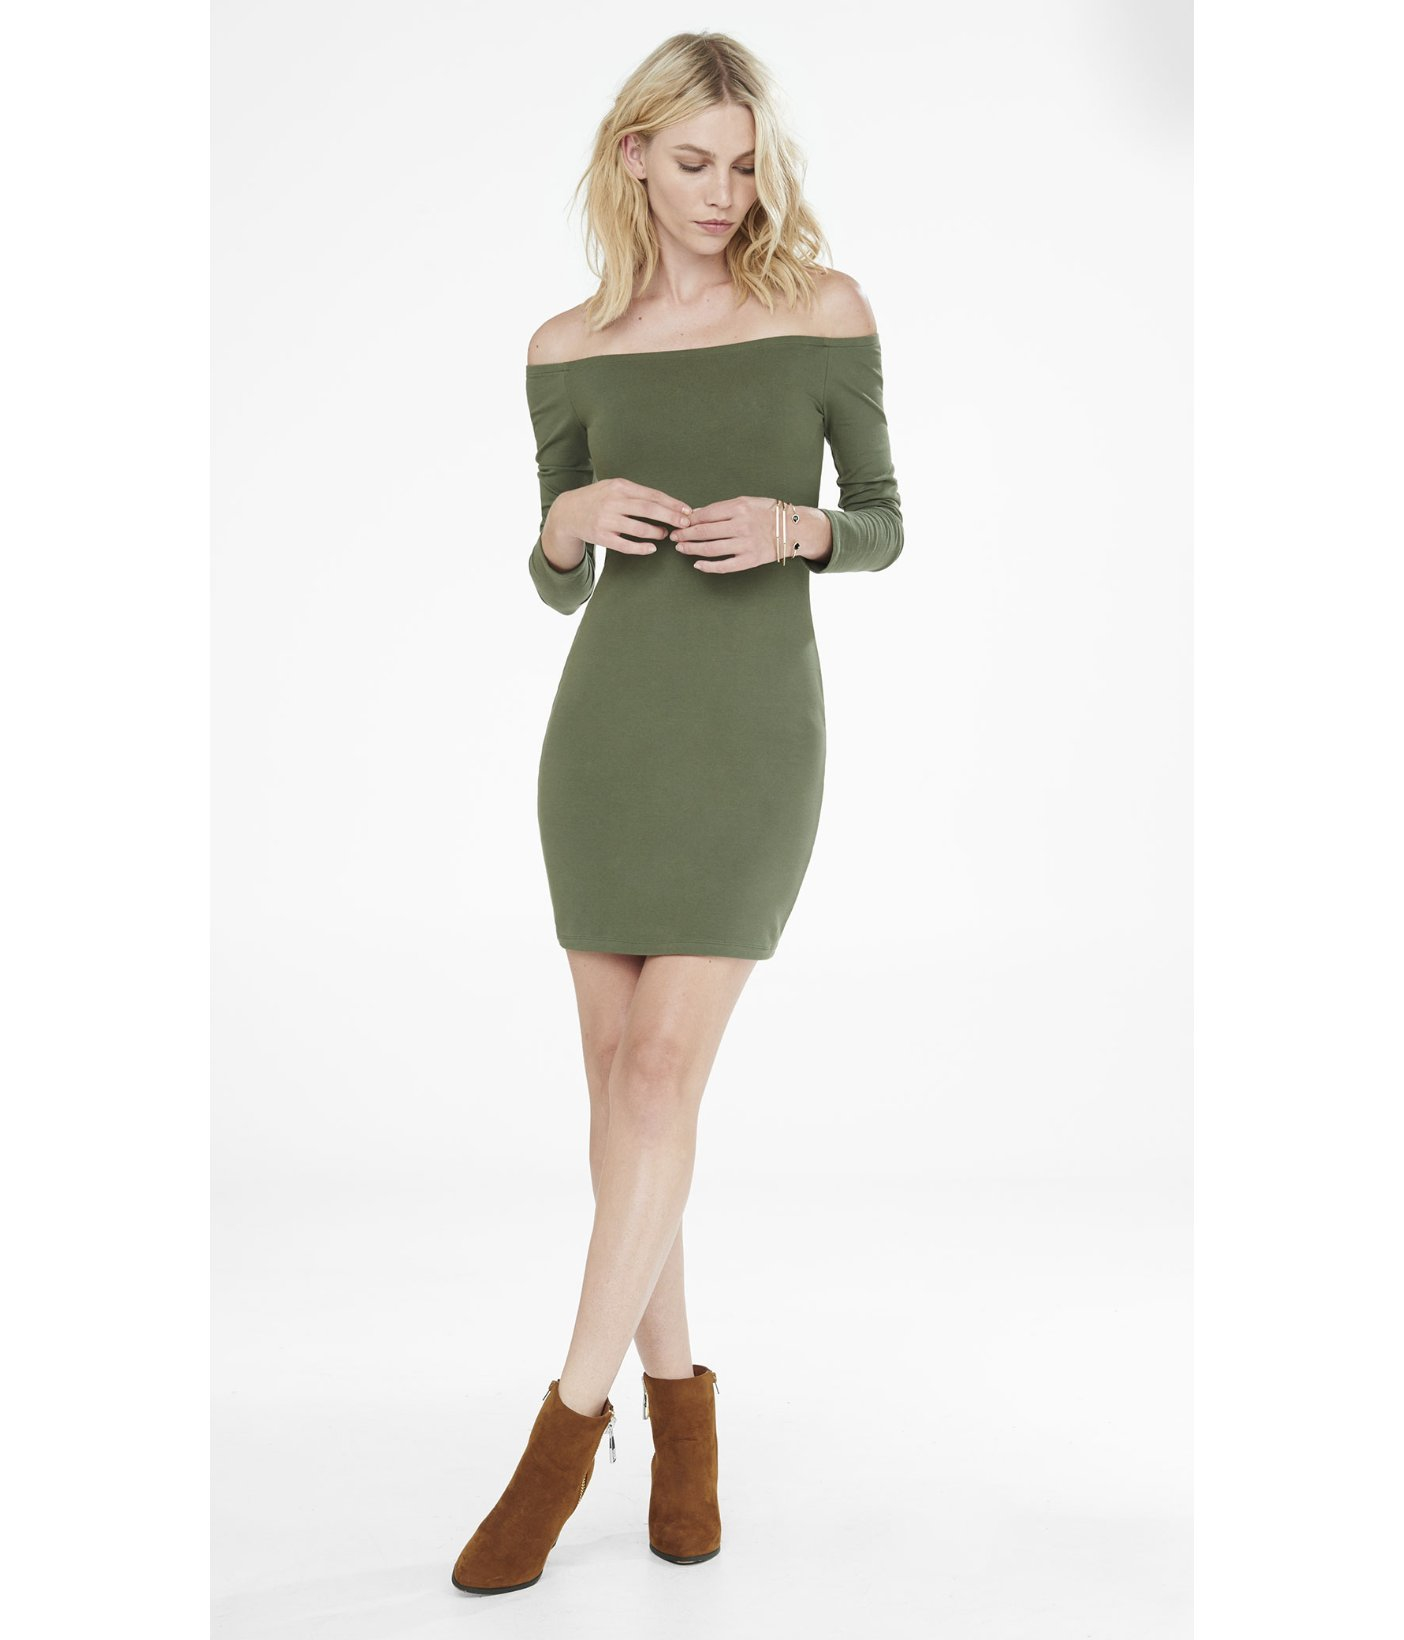 Free shipping and returns on Women's Green Dresses at coolmfilehj.cf